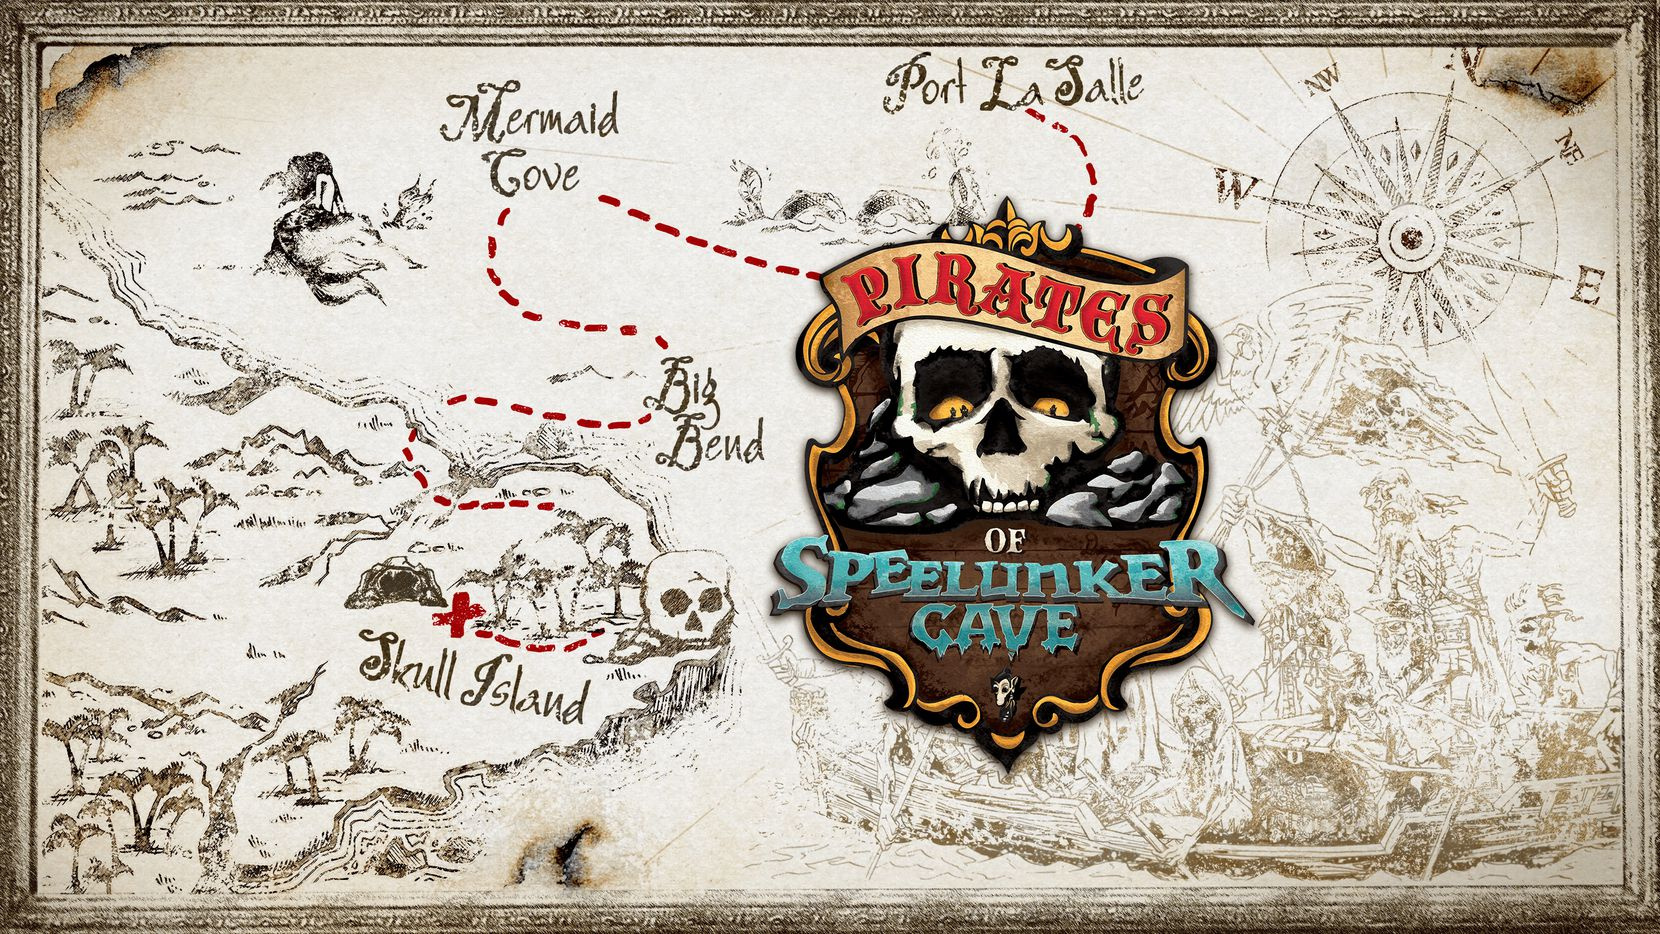 Six Flags Over Texas is adding a new water ride that pays homage to one of the park's original attractions.